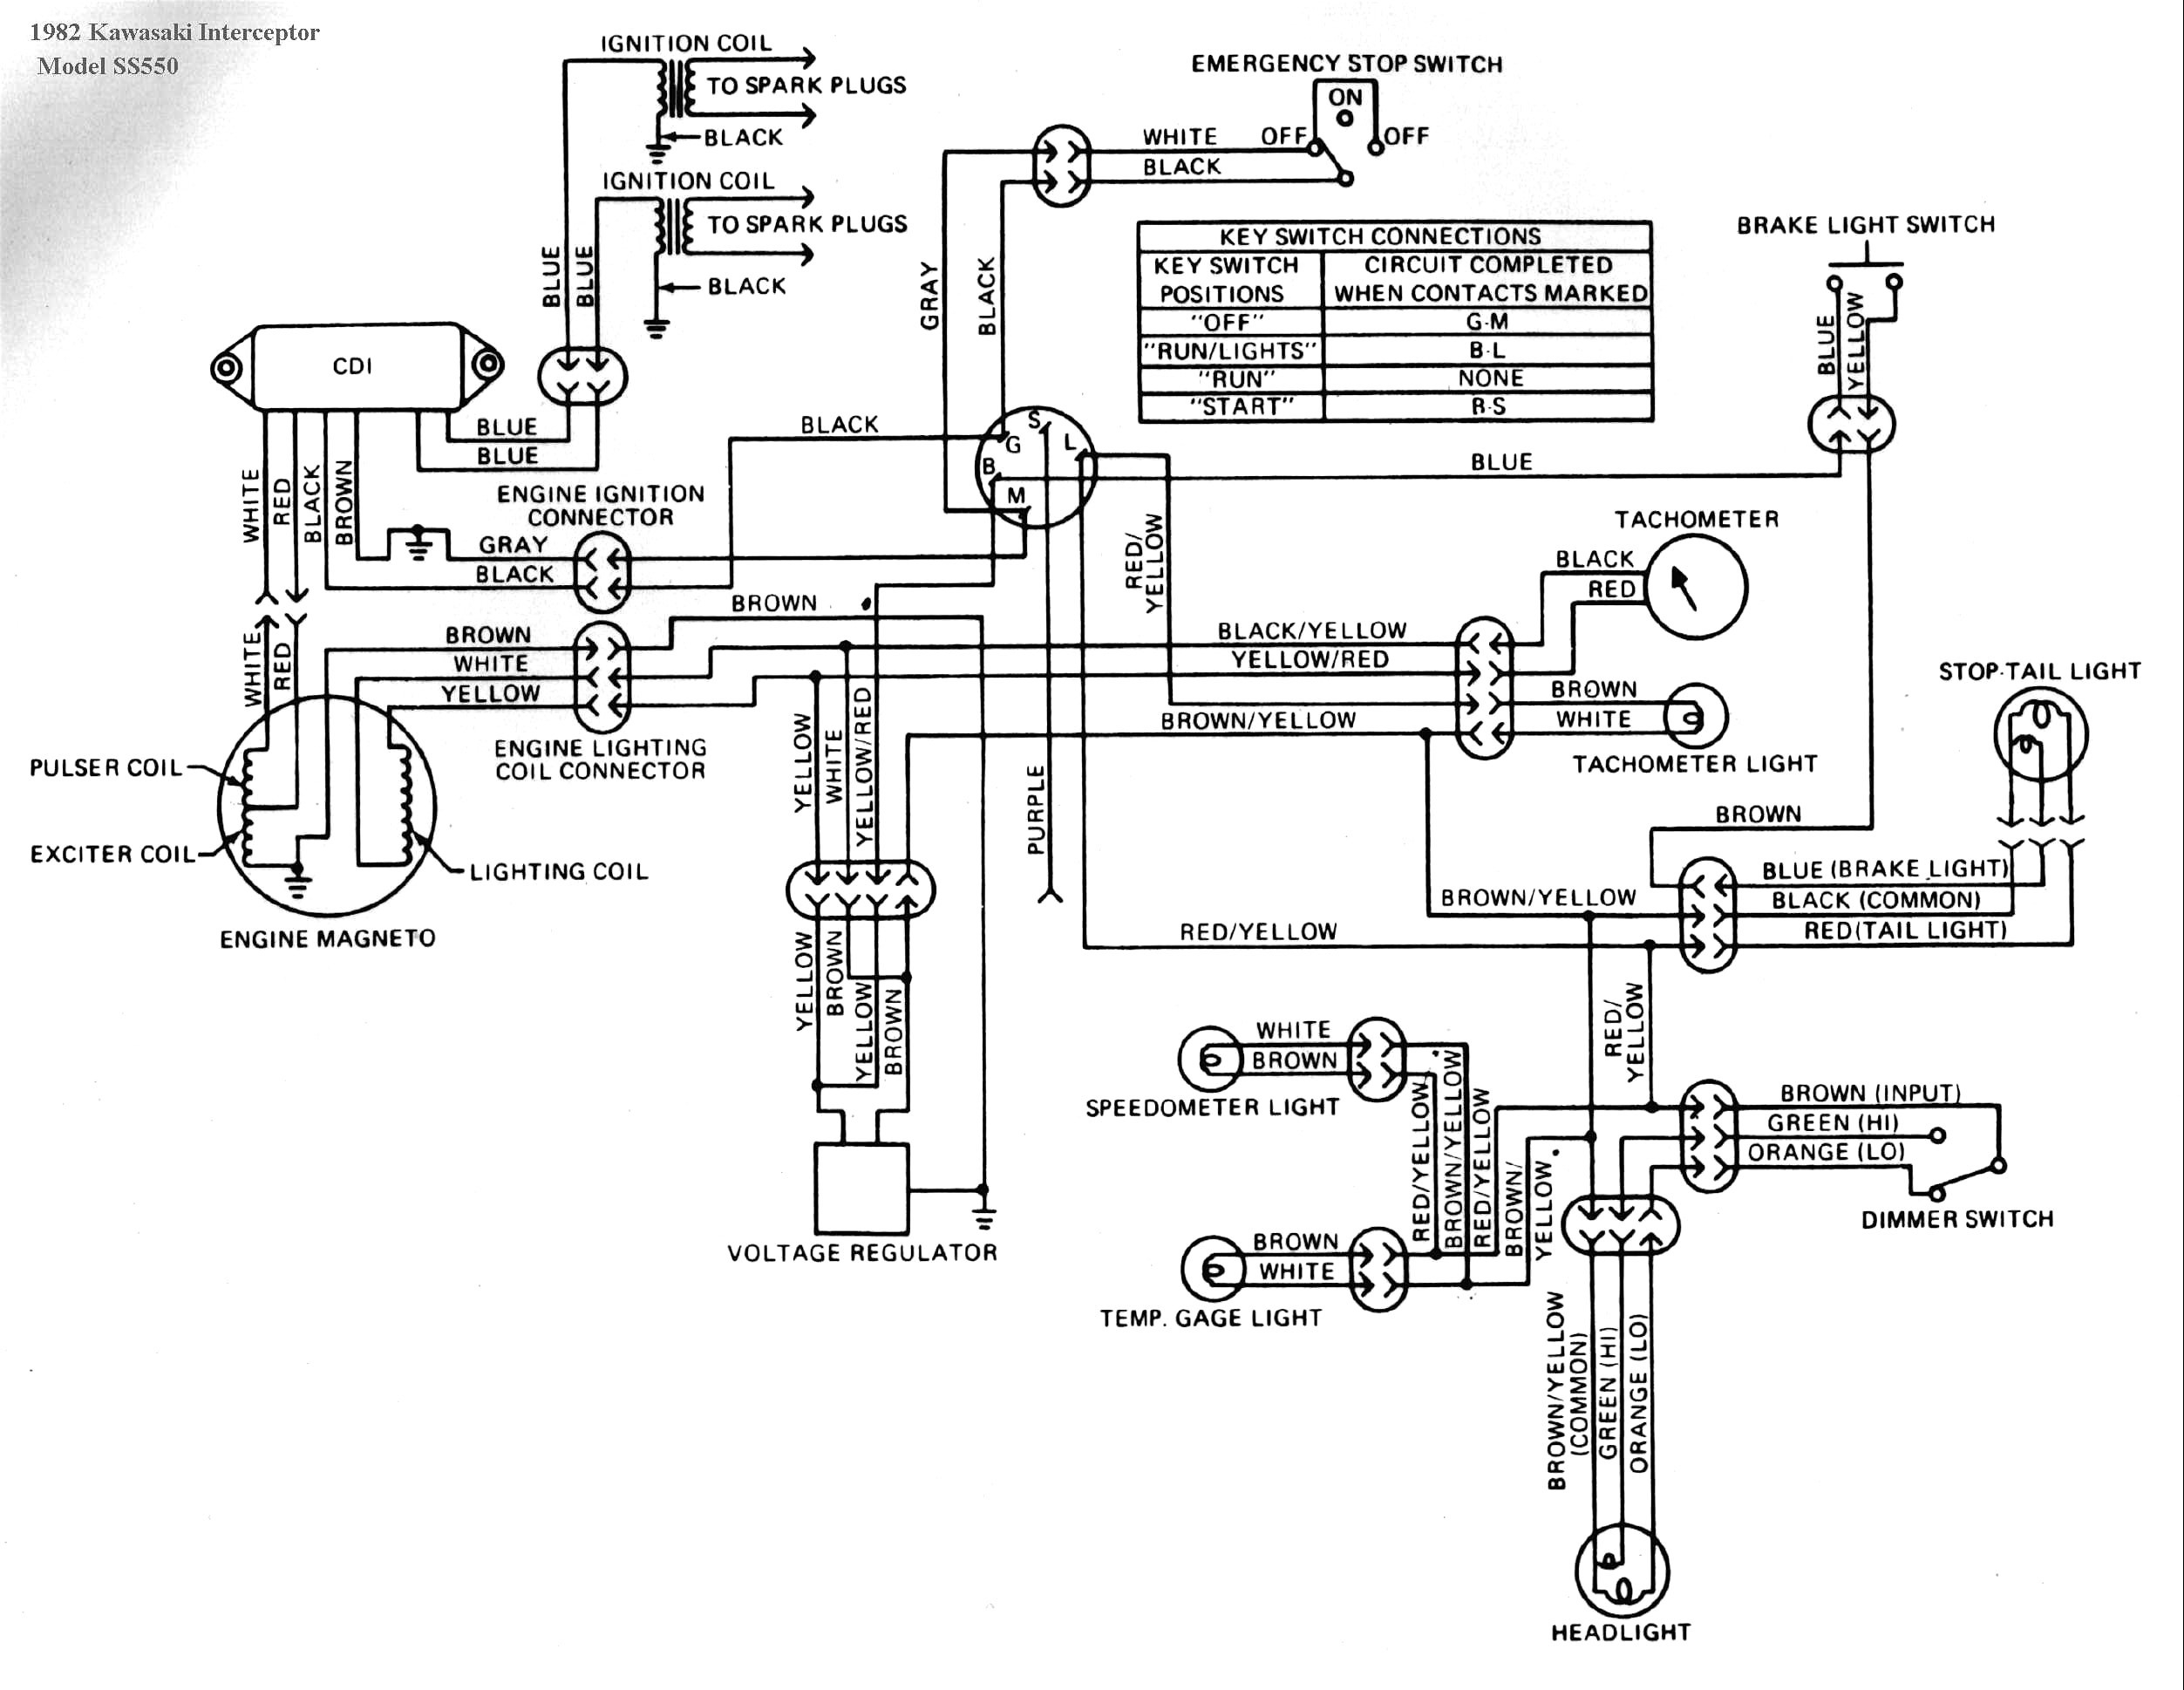 Wiring Diagram Also Xr650r Wiring Diagram On Ktm 550 Wiring ... on kz650 wiring diagram, z400 wiring diagram, klr650 wiring diagram, ninja 250r wiring diagram, z1000 wiring diagram, fj1100 wiring diagram, kz1000 wiring diagram, kz440 wiring diagram, zx7r wiring diagram, gs 750 wiring diagram, kz750 wiring diagram, kz400 wiring diagram, xs650 wiring diagram, honda wiring diagram, zl1000 wiring diagram, ex500 wiring diagram, ex250 wiring diagram, vulcan 1500 wiring diagram, kz200 wiring diagram, ke175 wiring diagram,